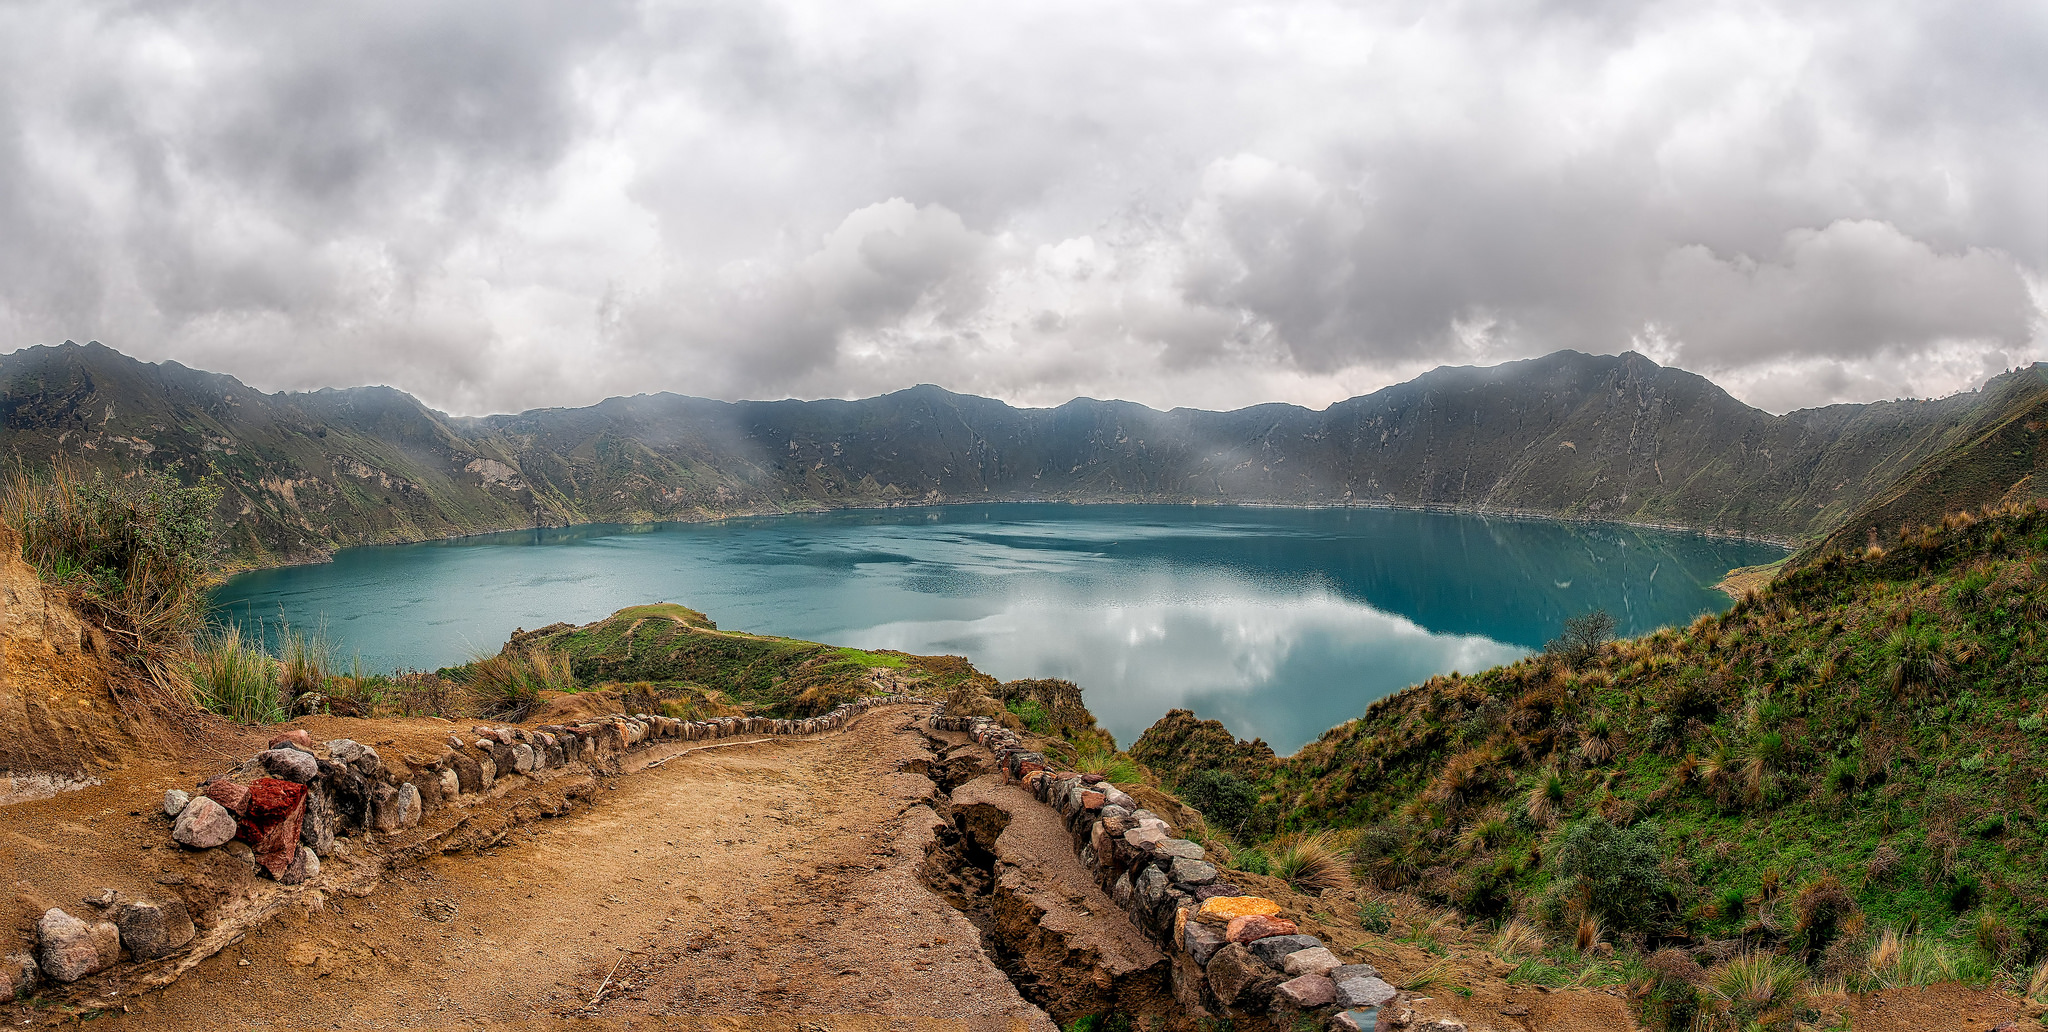 Quilotoa is the most western volcano in the Ecuadorian Andes. Photo credit